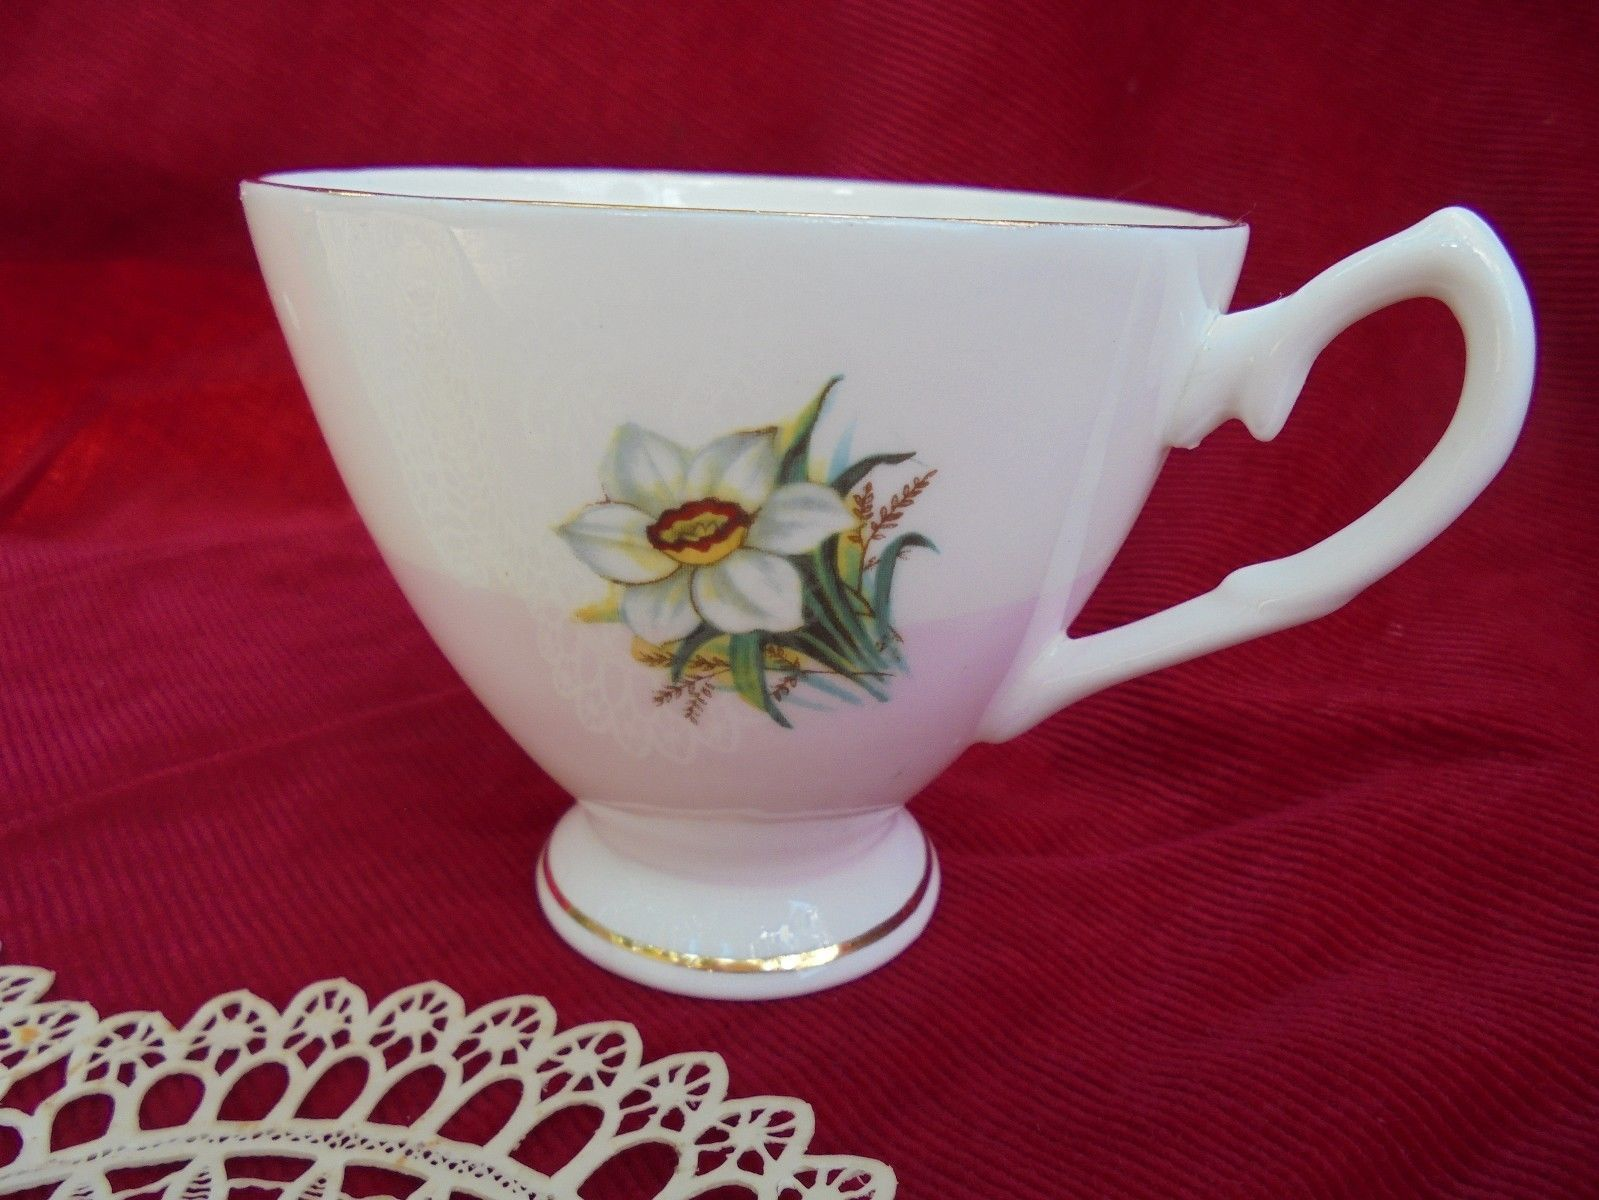 FINE BONE CHINA, HAMILTON Footed CUP, Floral Porcelain  - $9.46